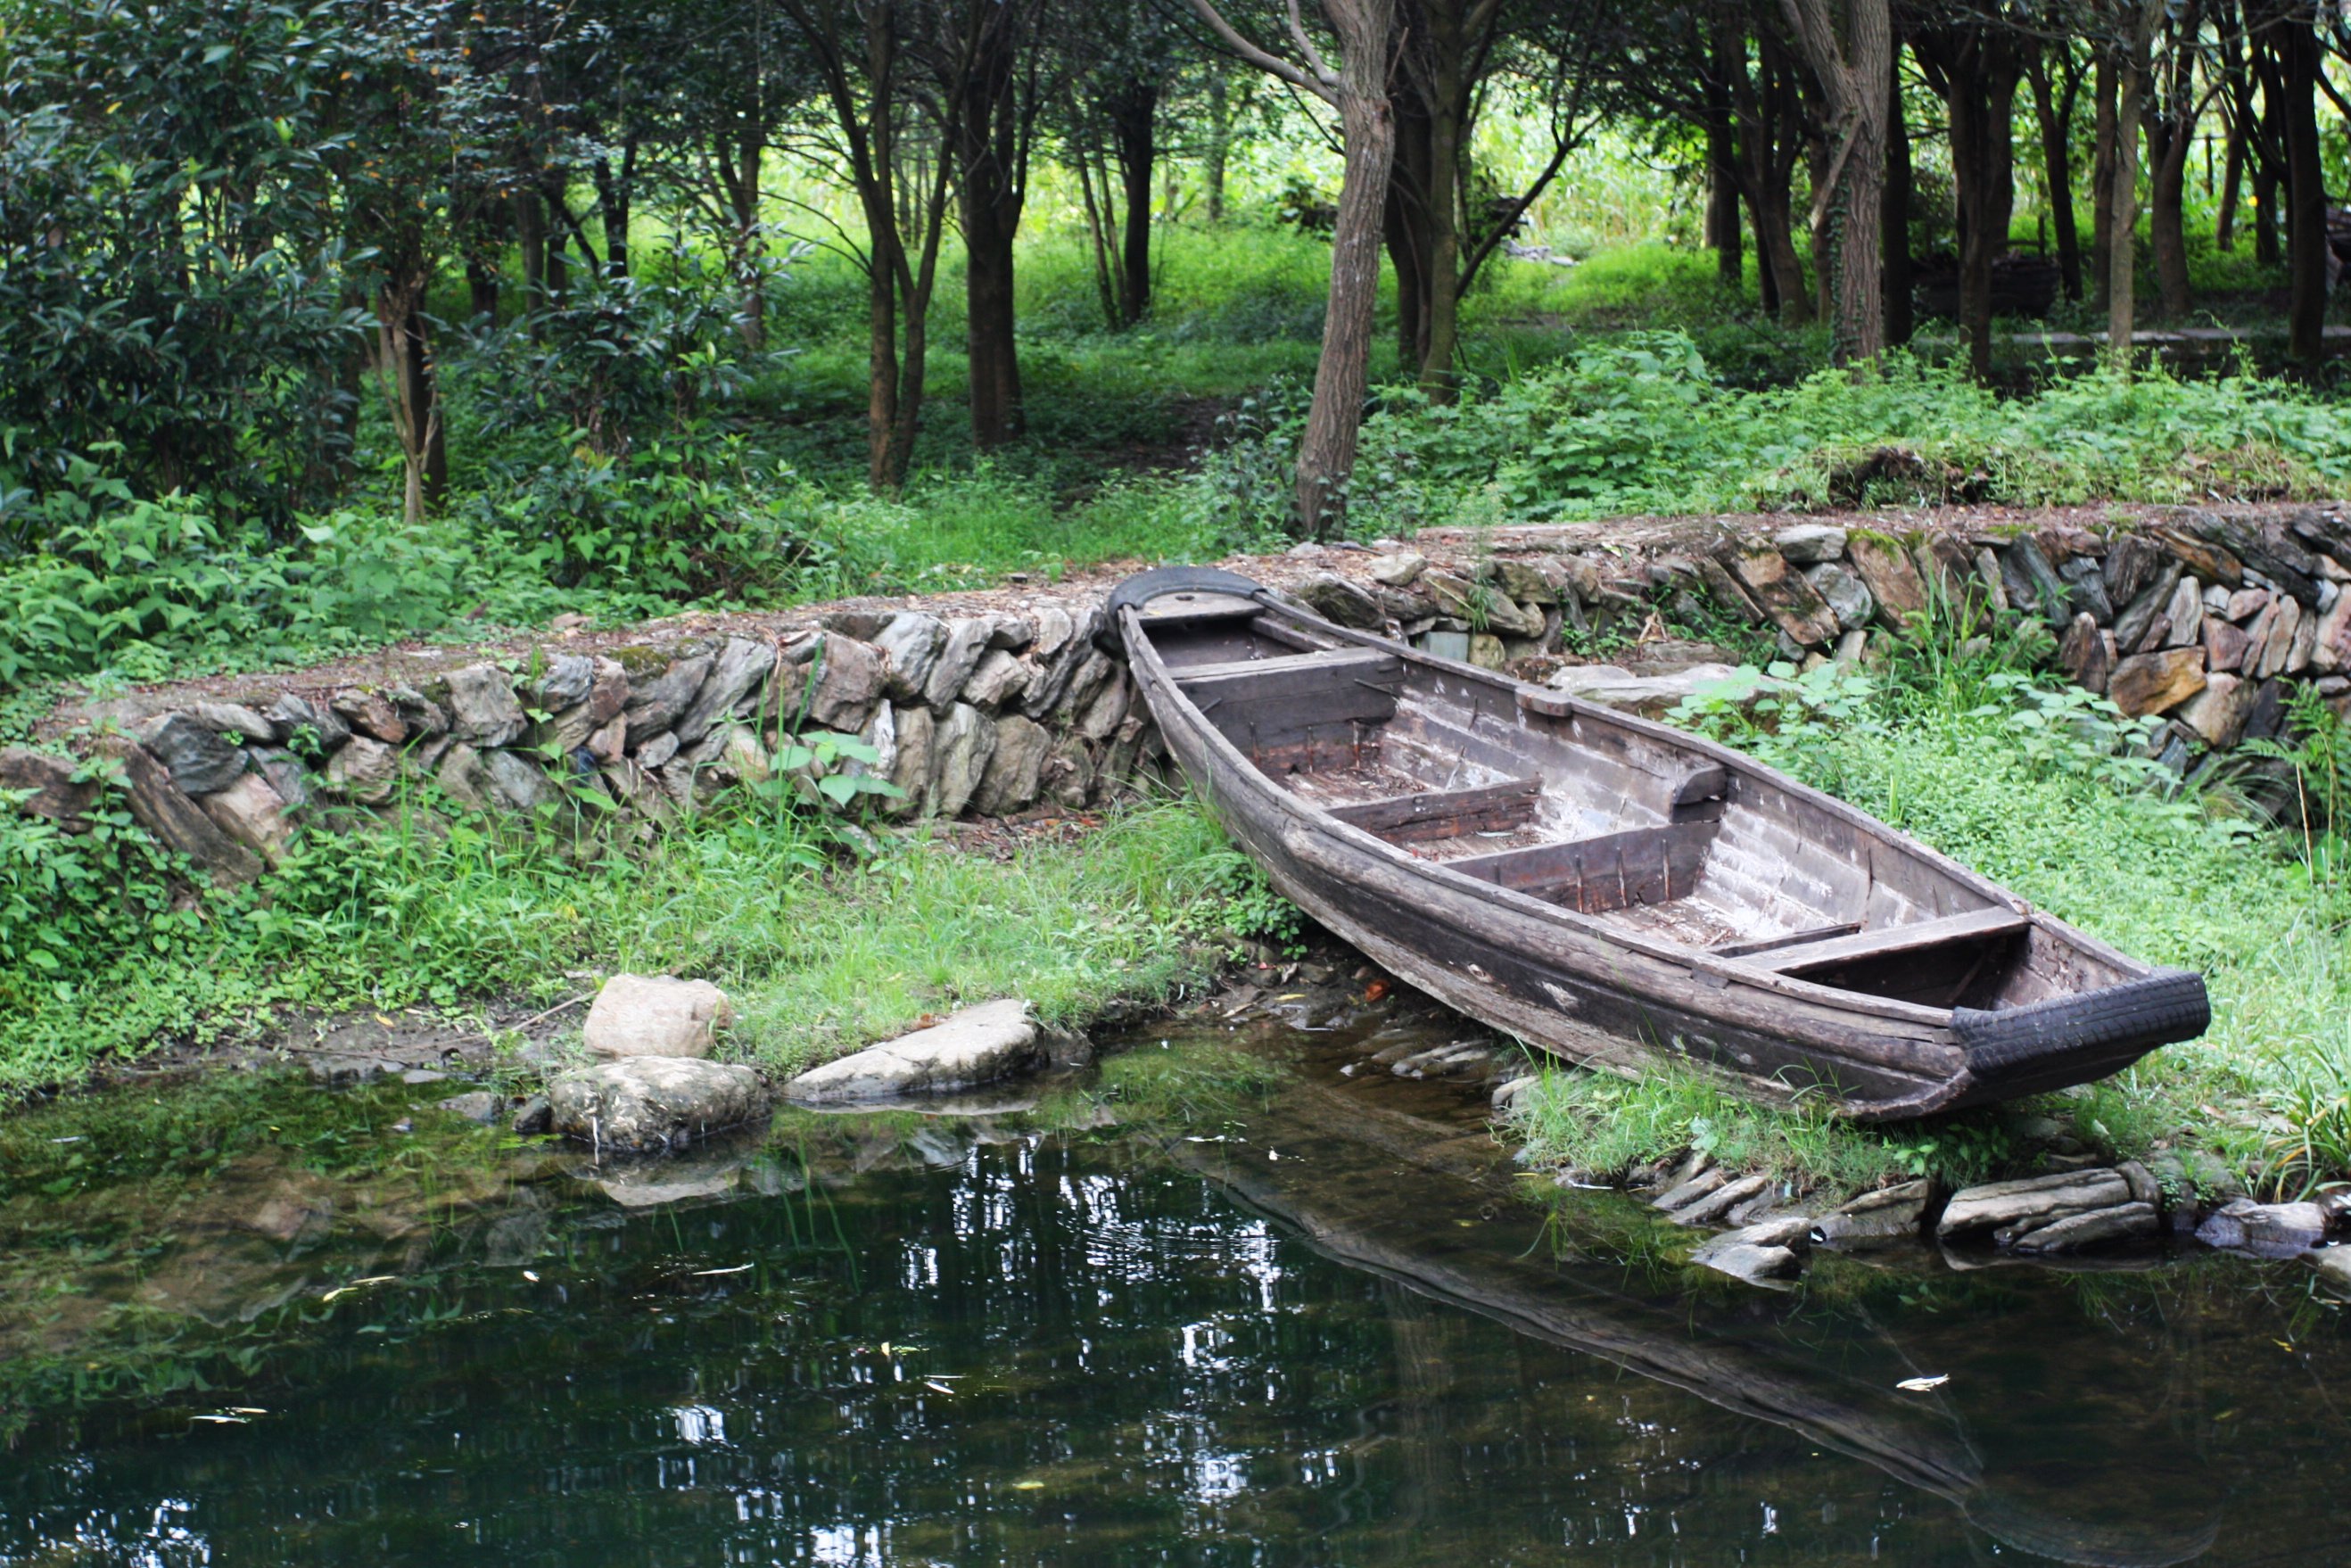 Boat on River at Wuyan village China